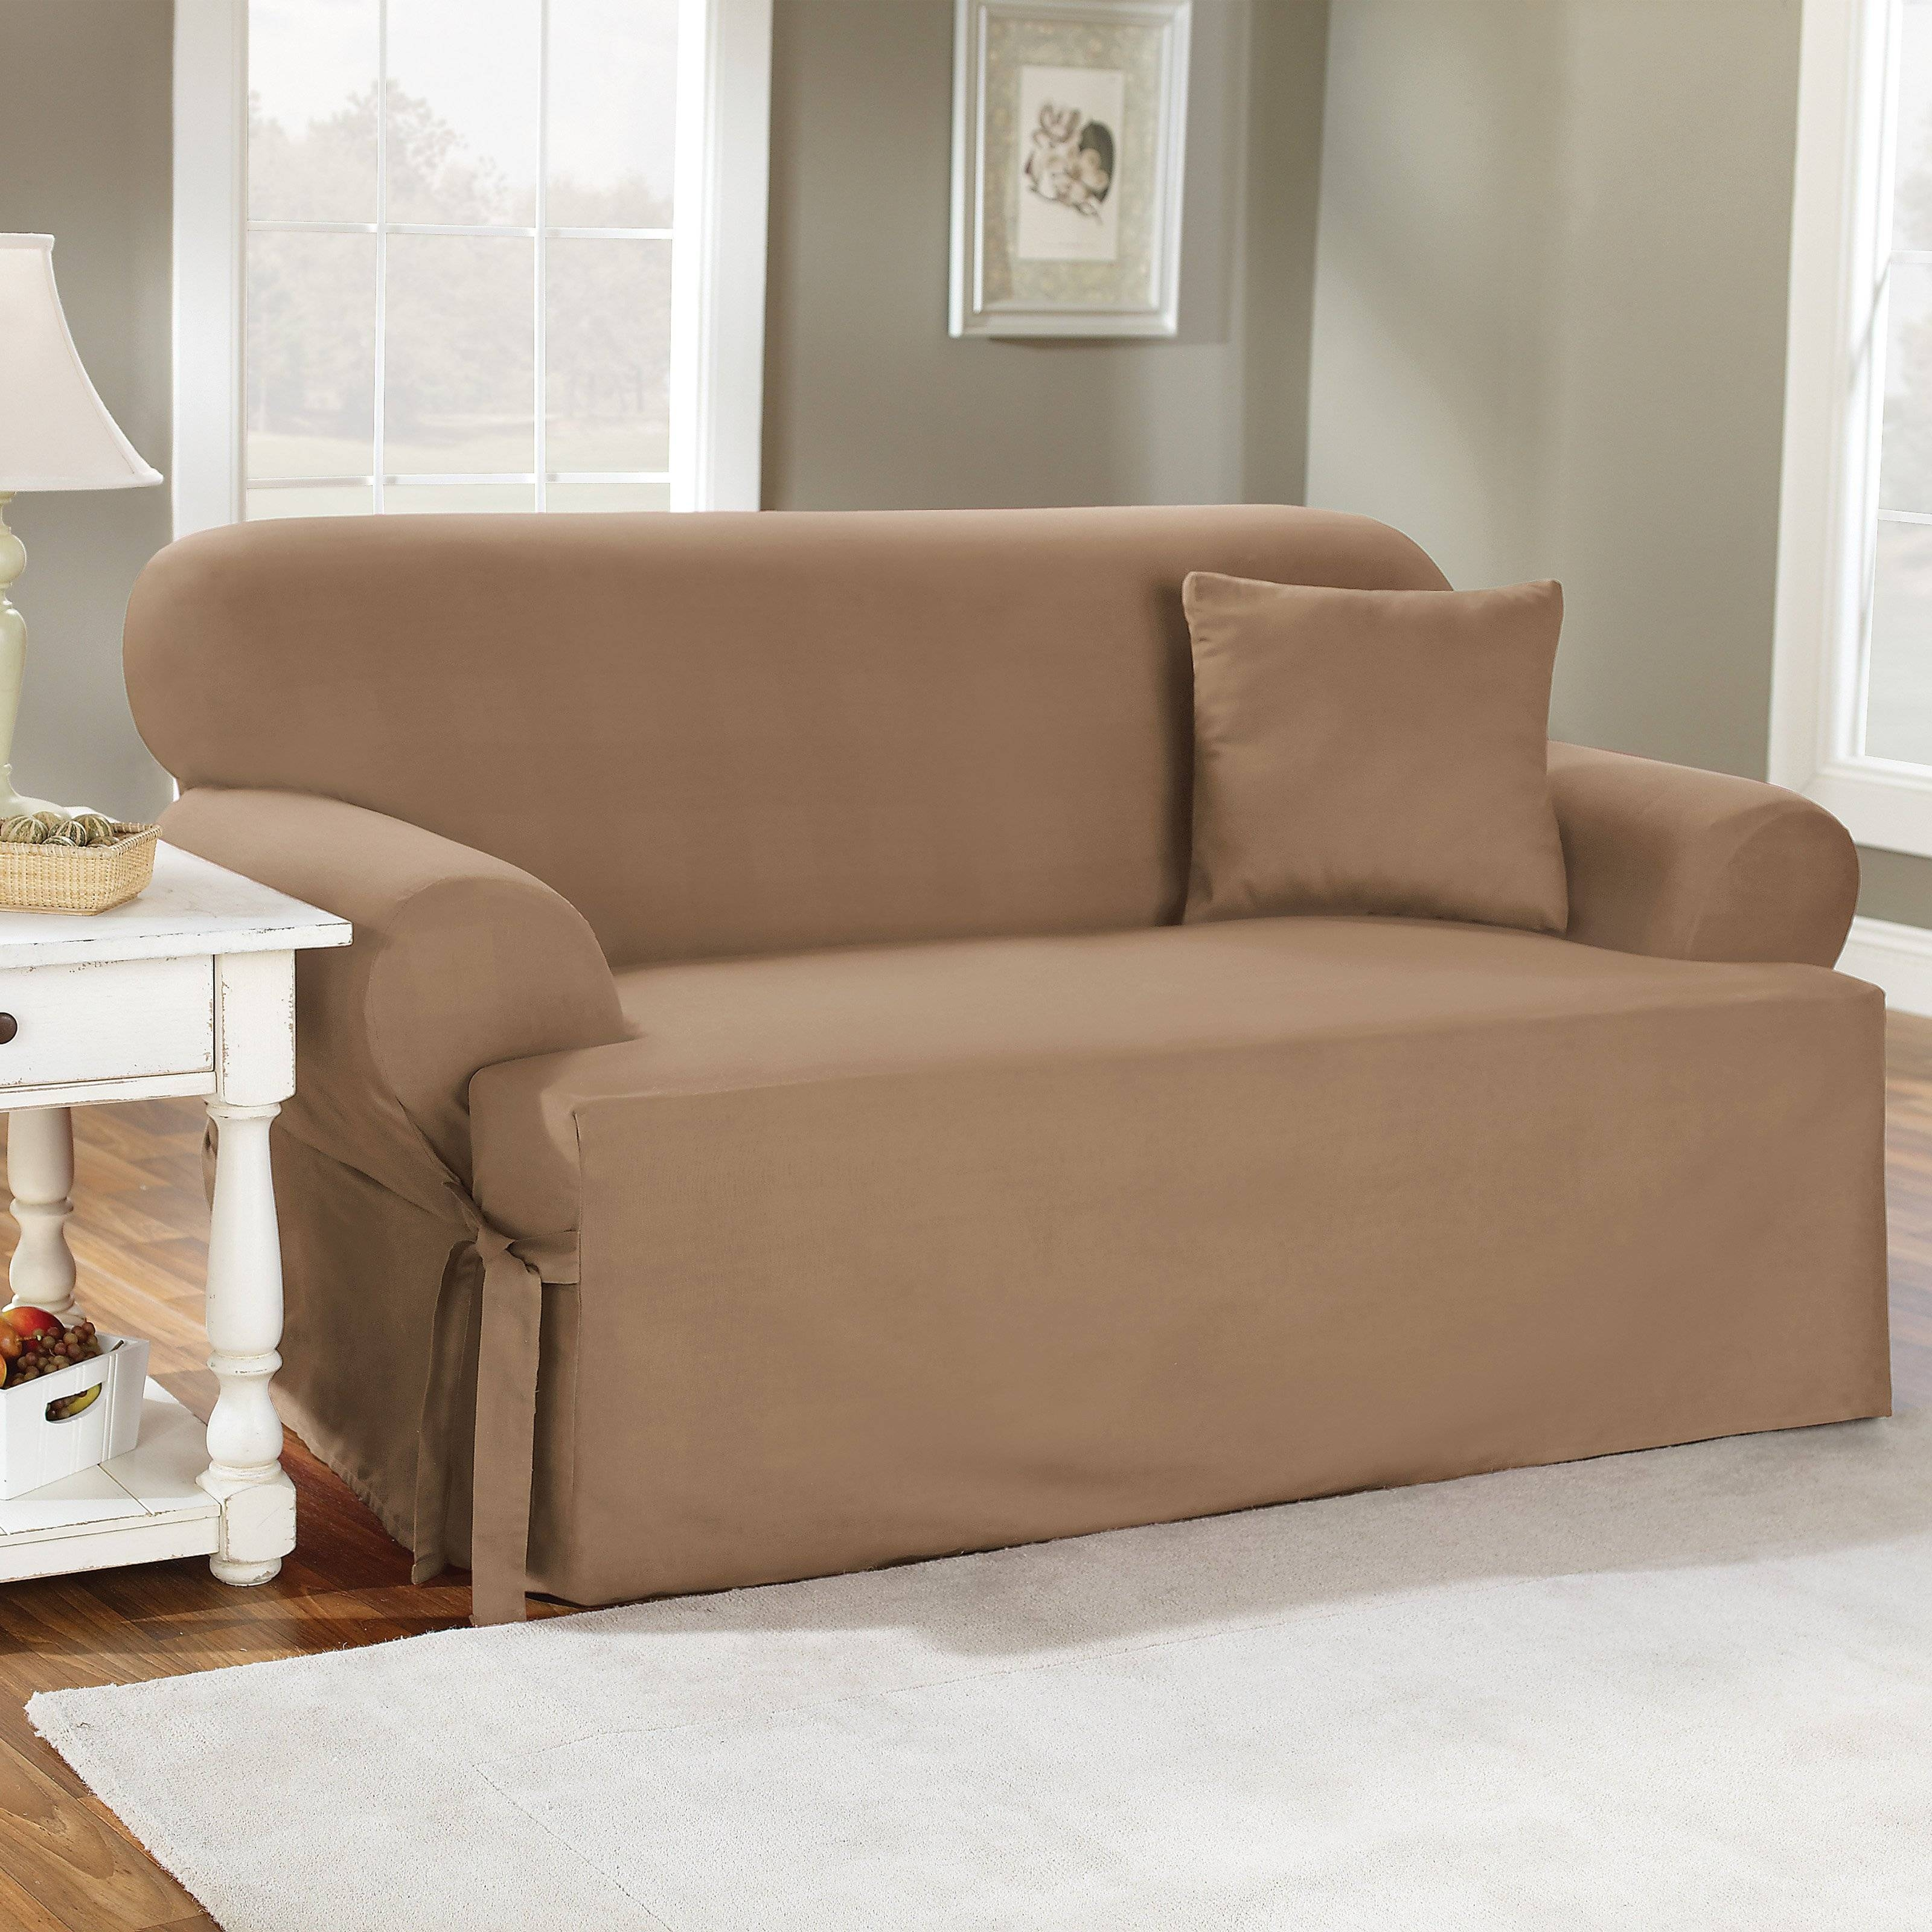 Sure Fit Cotton Duck T Cushion Sofa Slipcover | Hayneedle In Sleeper Sofa Slipcovers (View 15 of 15)